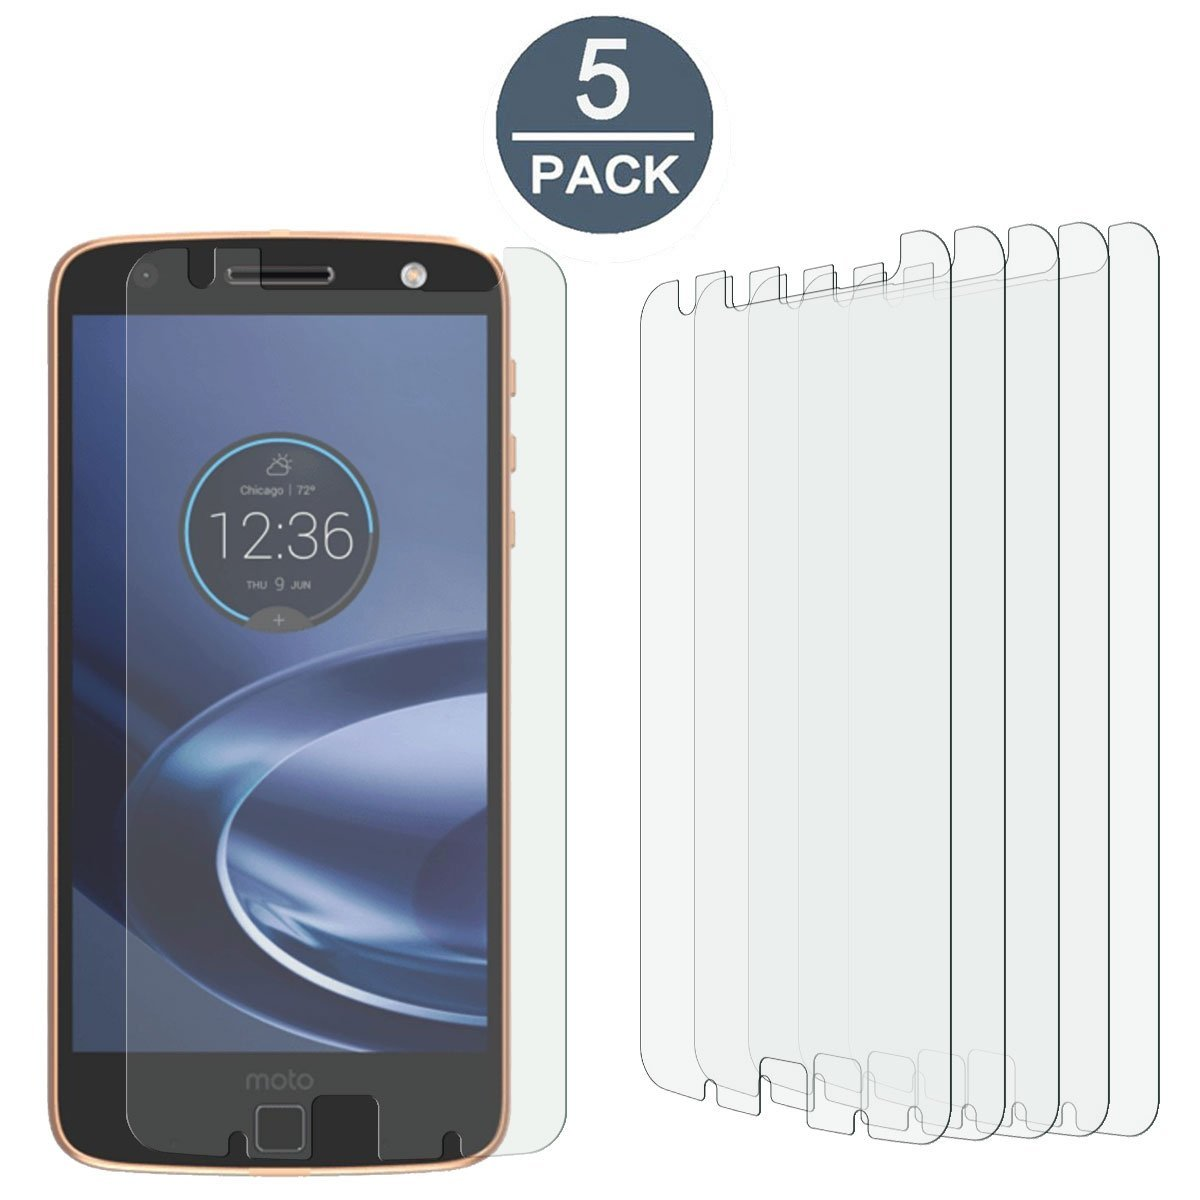 [5 Pack]Motorola Moto Z Force Droid High Defintion Ultra Clear Screen Protector Film(Not Glass) For Motorola Moto Z Force Droid(HD Clear)